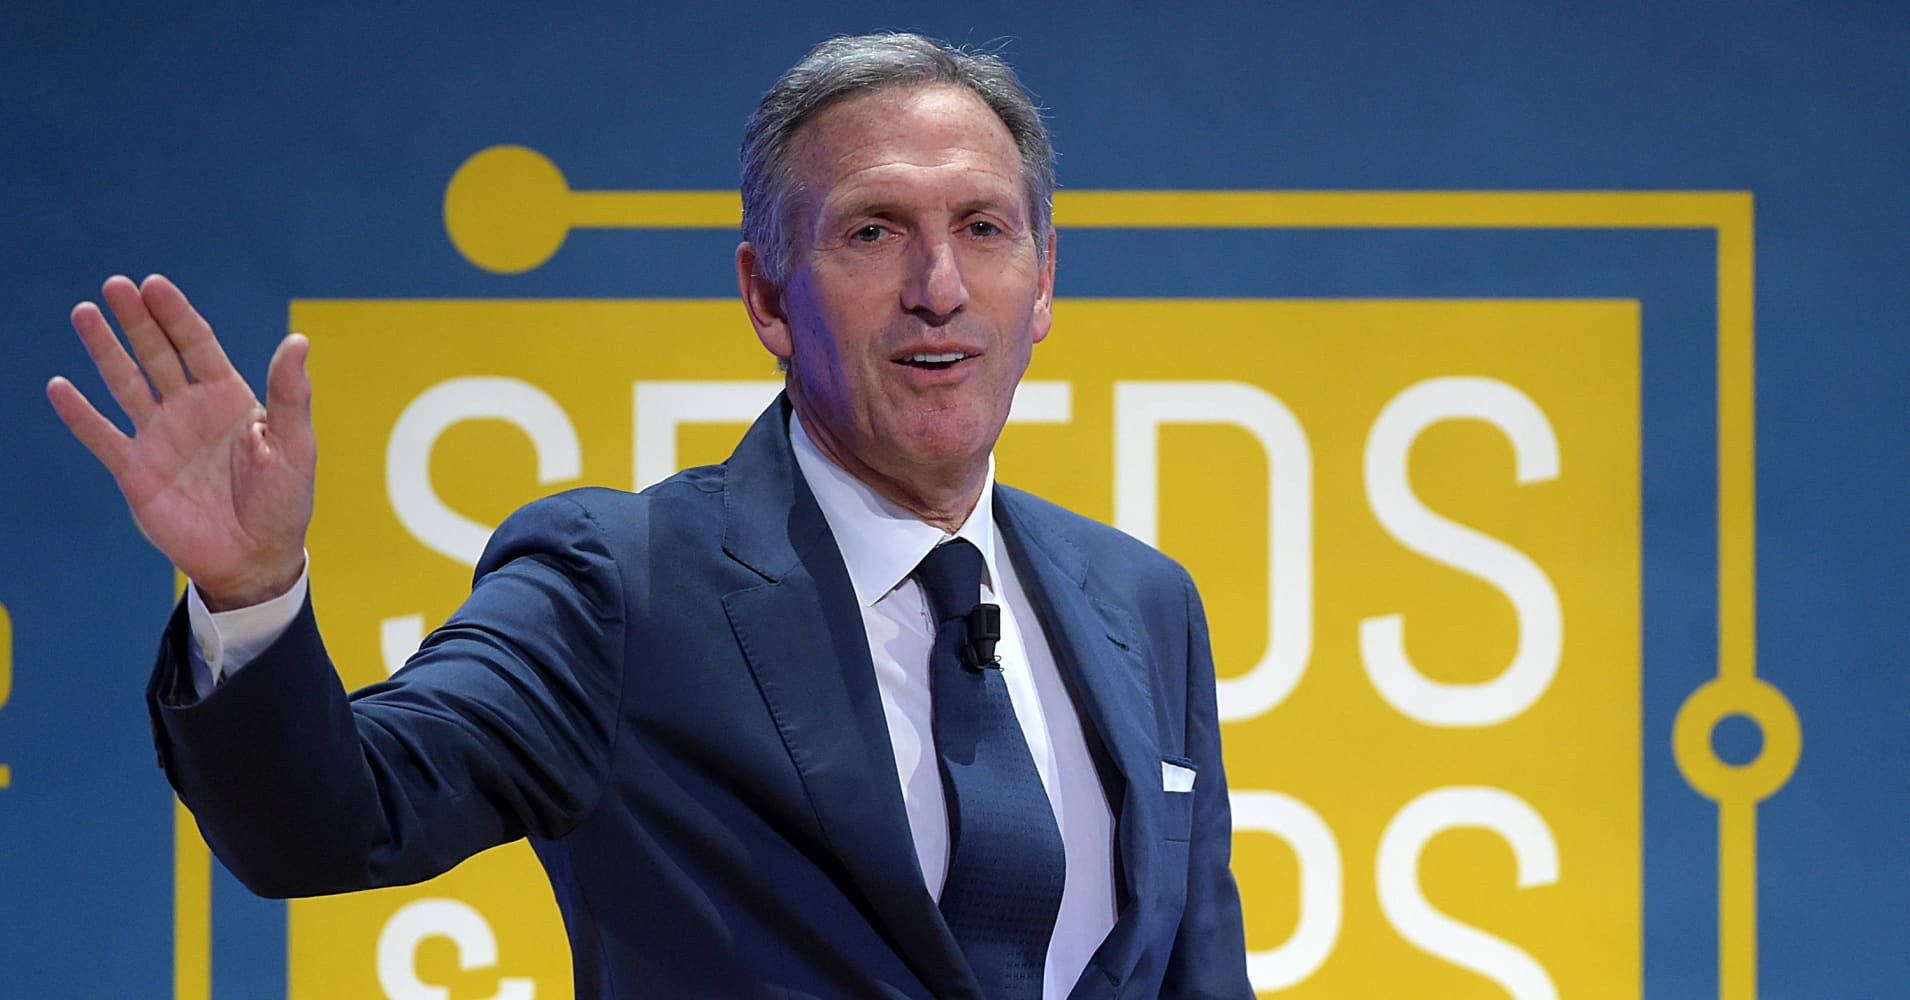 Former Starbucks CEO Howard Schultz said to mull independent 2020 bid